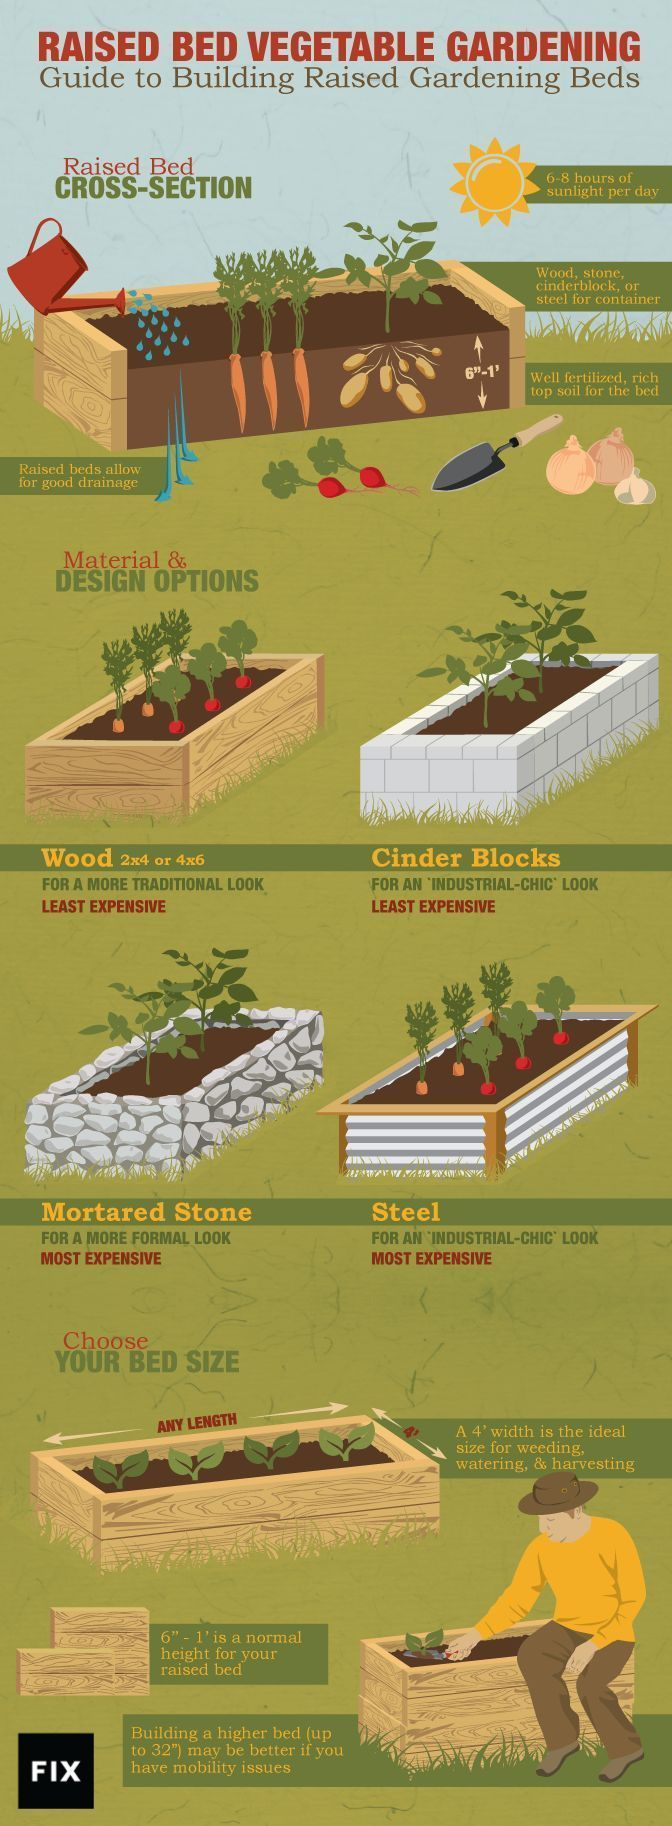 Incroyable A Guide To Building Raised Gardening Beds